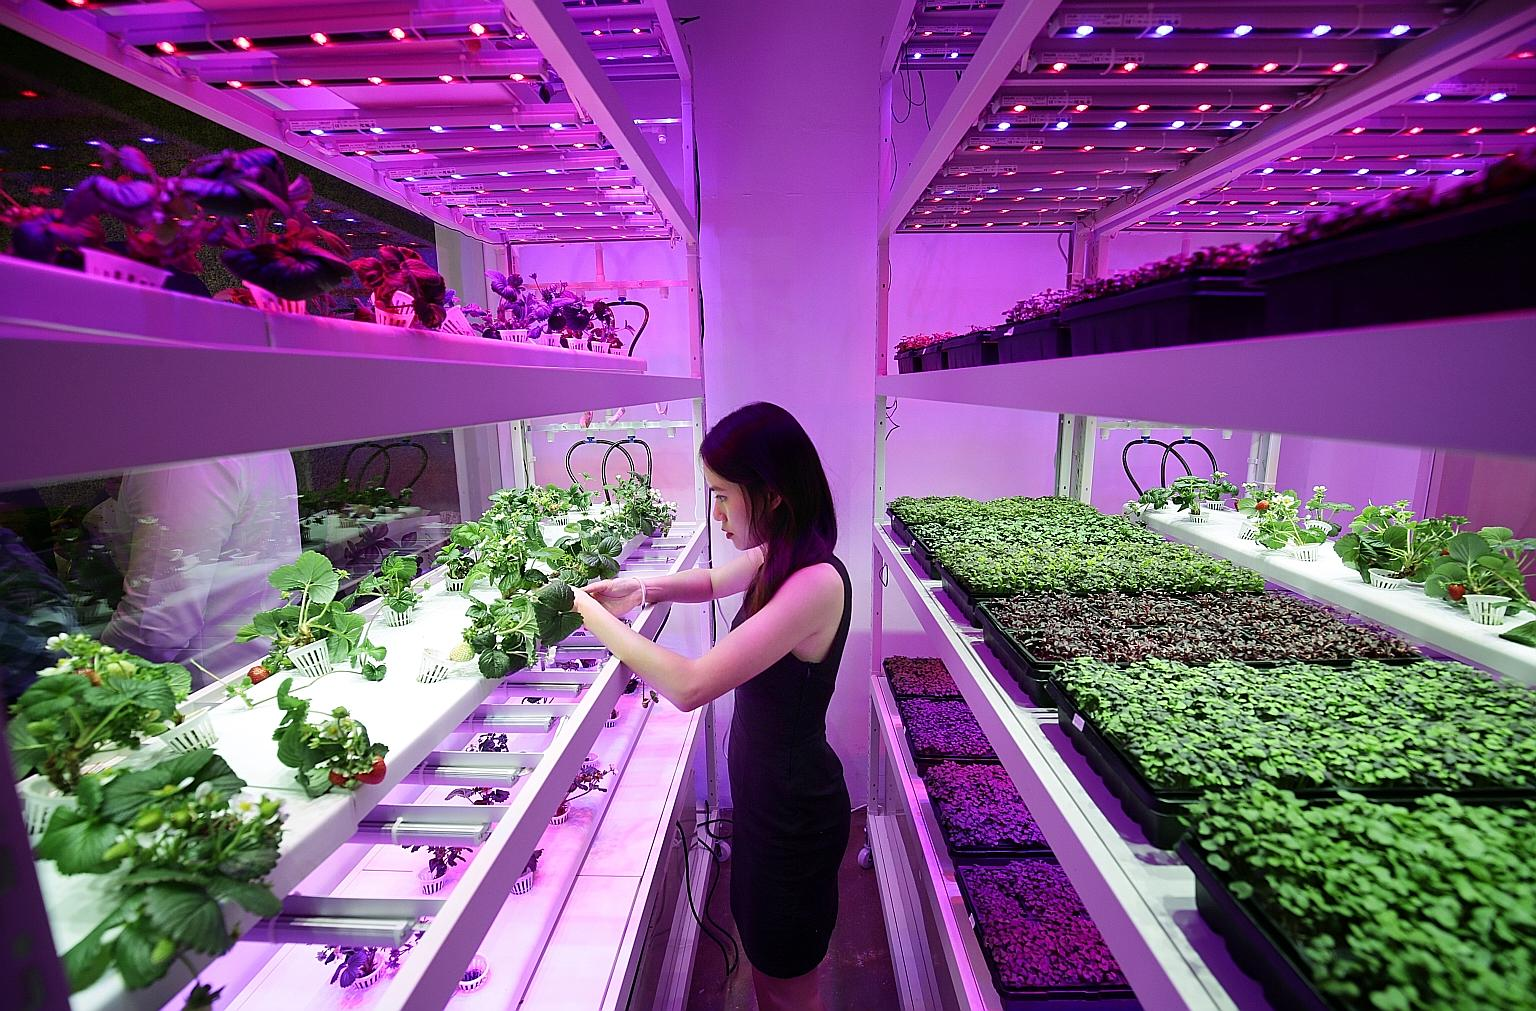 Urban Farming In Singapore Continues to Expand, Now With Strawberries